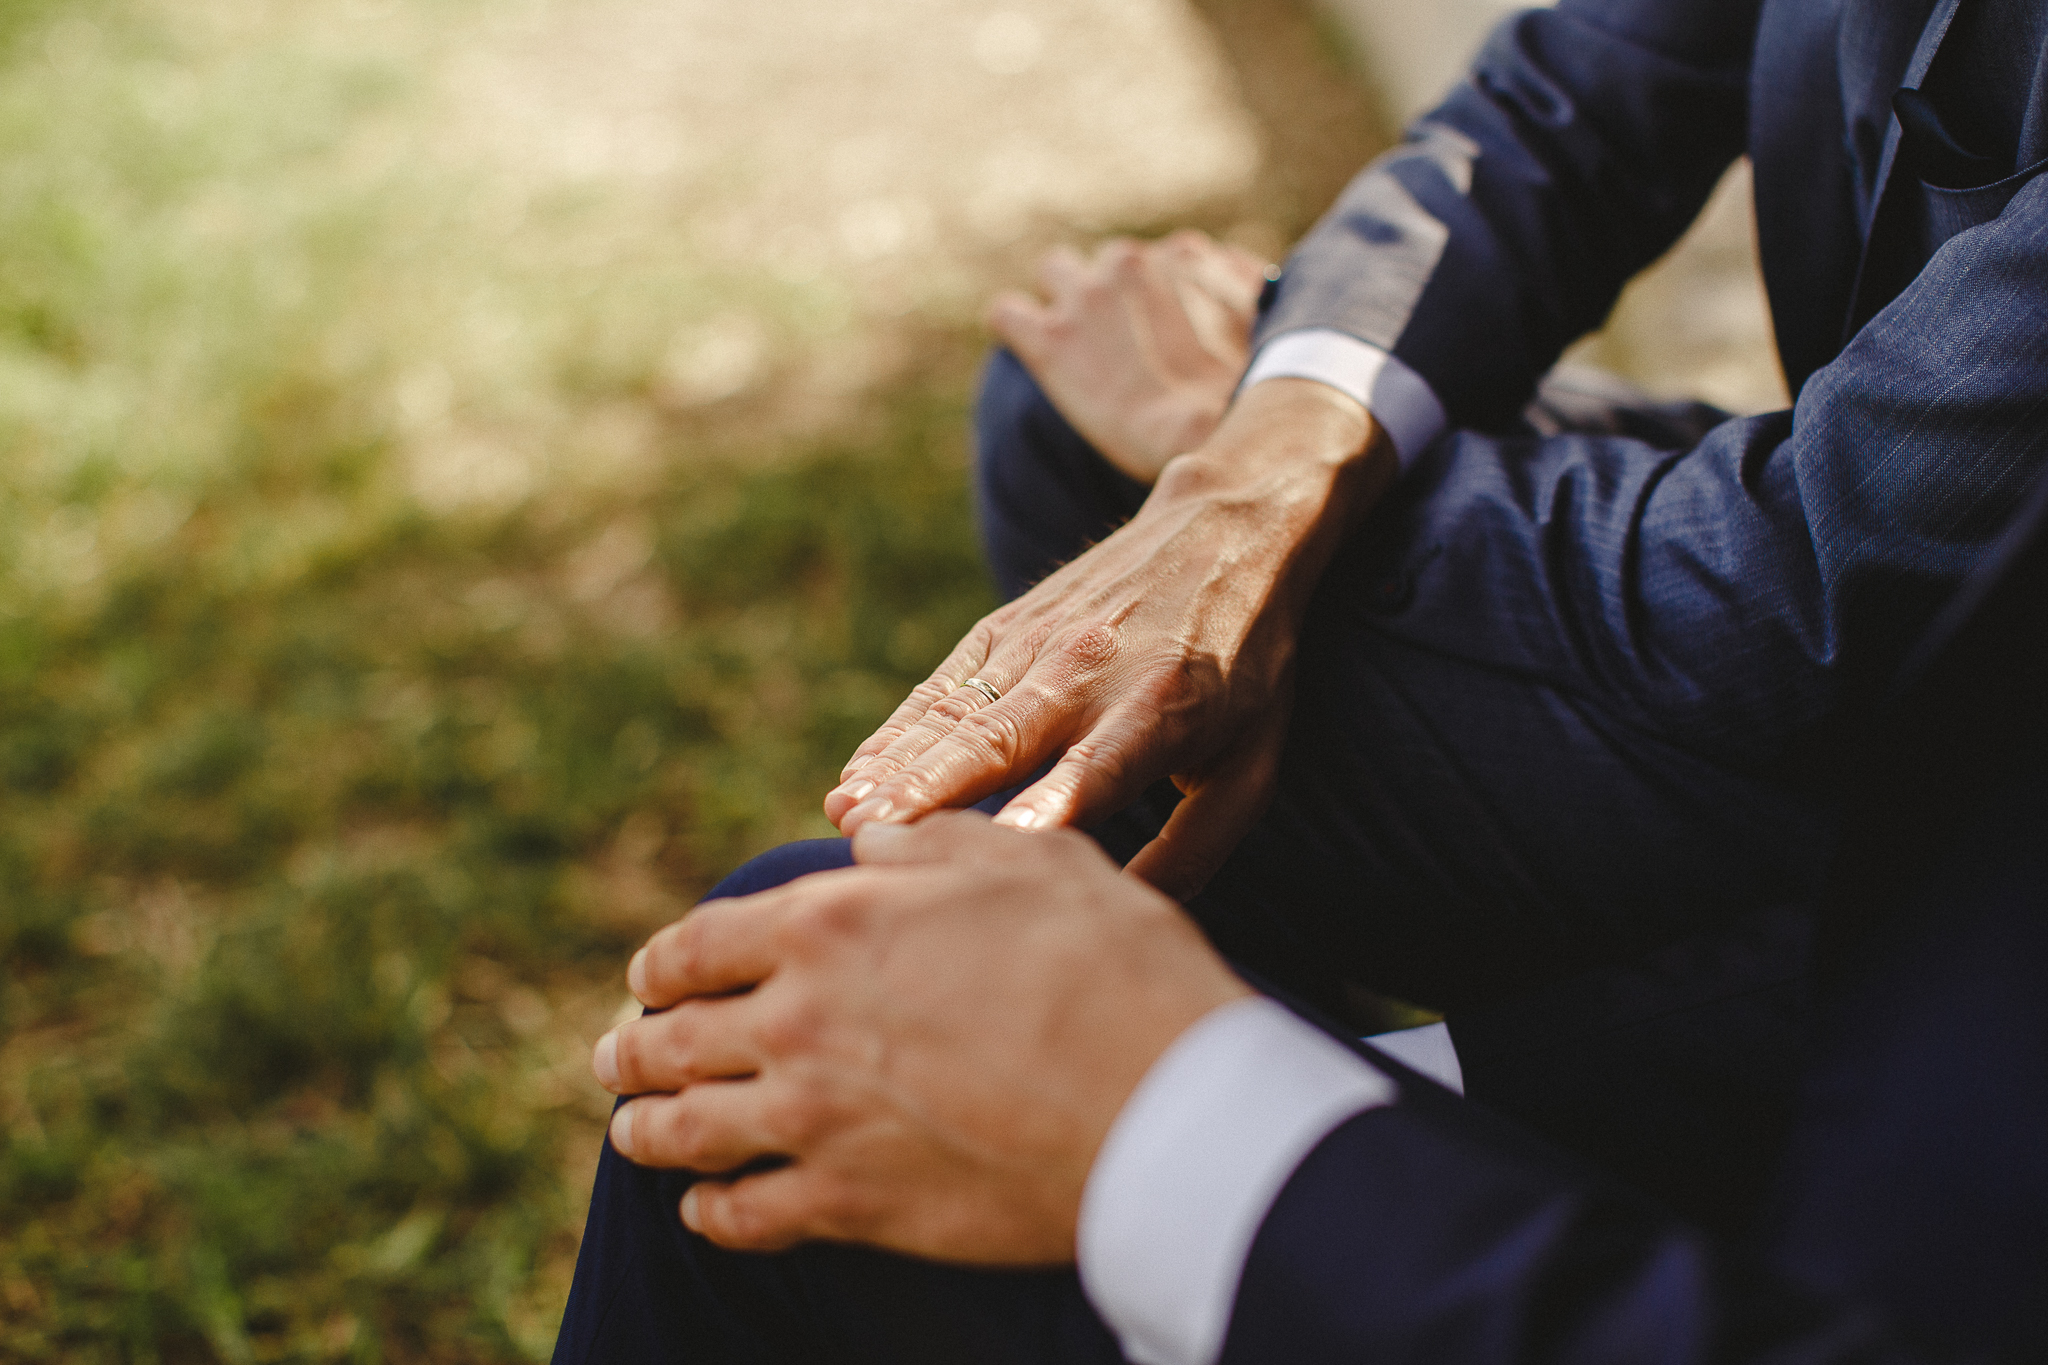 A couple sits under a tree touching hands after their wedding ceremony.